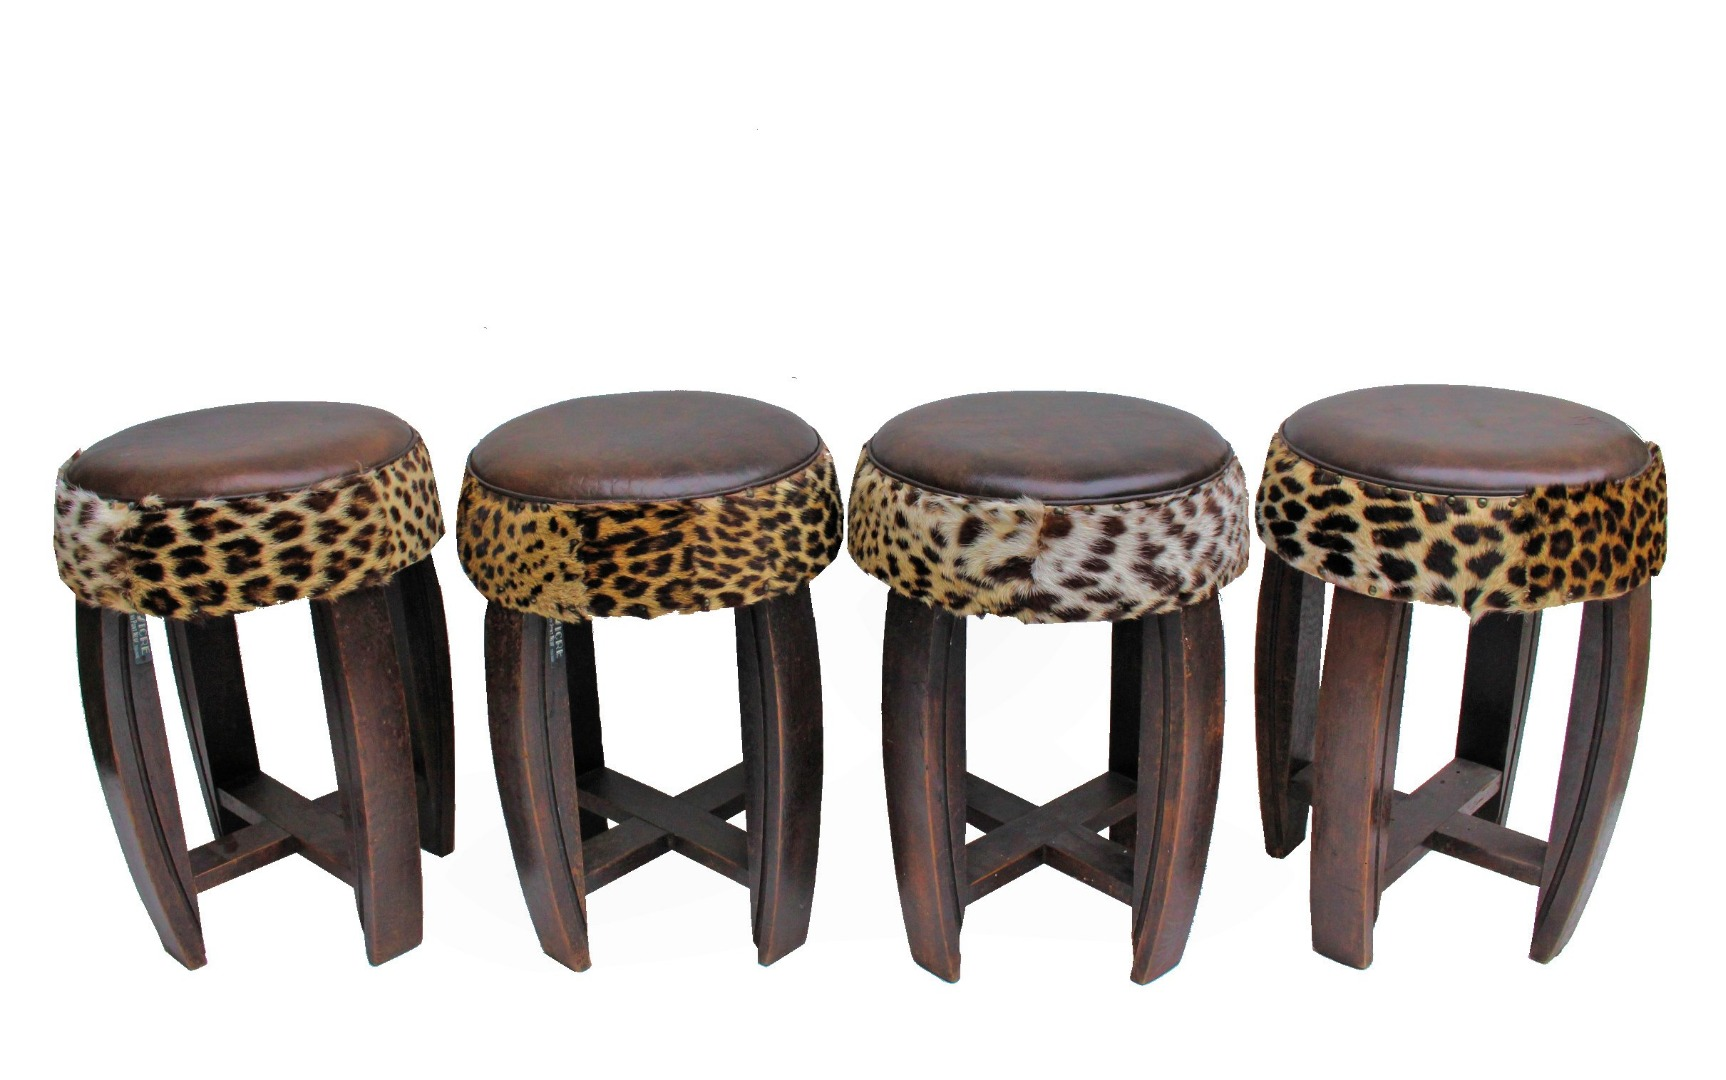 ART DECO PERIOD STOOLS